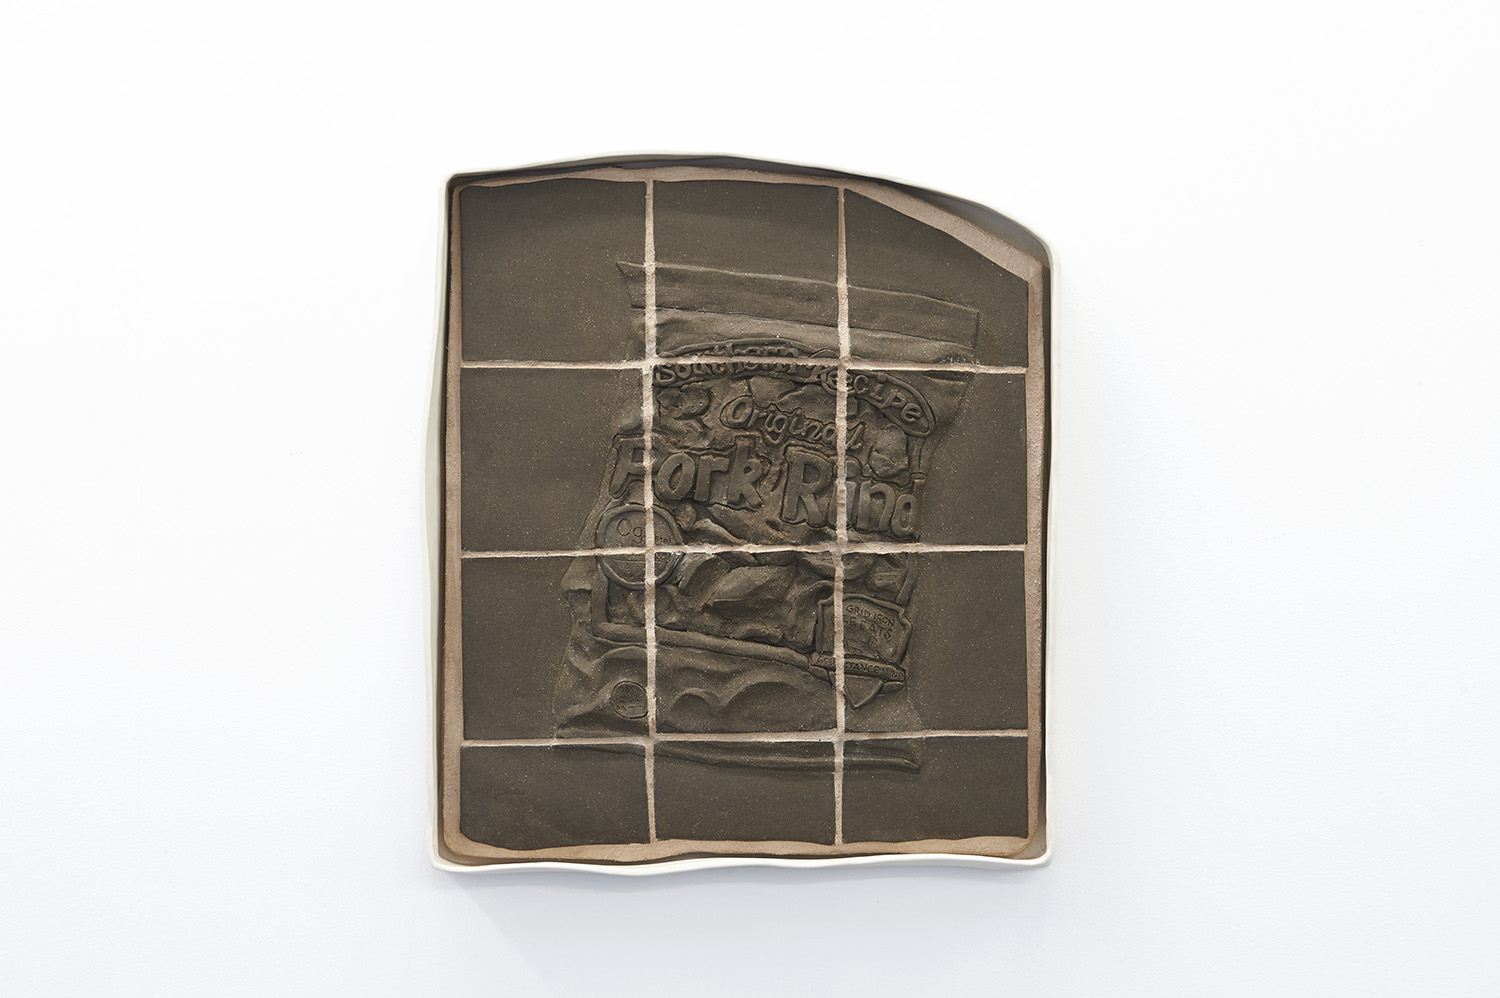 "<p><span class=""name"">Patrice Renee Washington</span><br><em>Untitled (No Boundaries)</em><span class='media'>Porcelain, composite wood, epoxy</span>13 x 11 x 2 in (33 x 27.9 x 5.1 cm)<br>2017<br><a class='inquire' href='mailto:info@gildargallery.com?subject=Artwork Inquiry PWAS0008&body=I am interested in finding out more about Untitled (No Boundaries) by Patrice Renee Washington'>Inquire</a></p>"